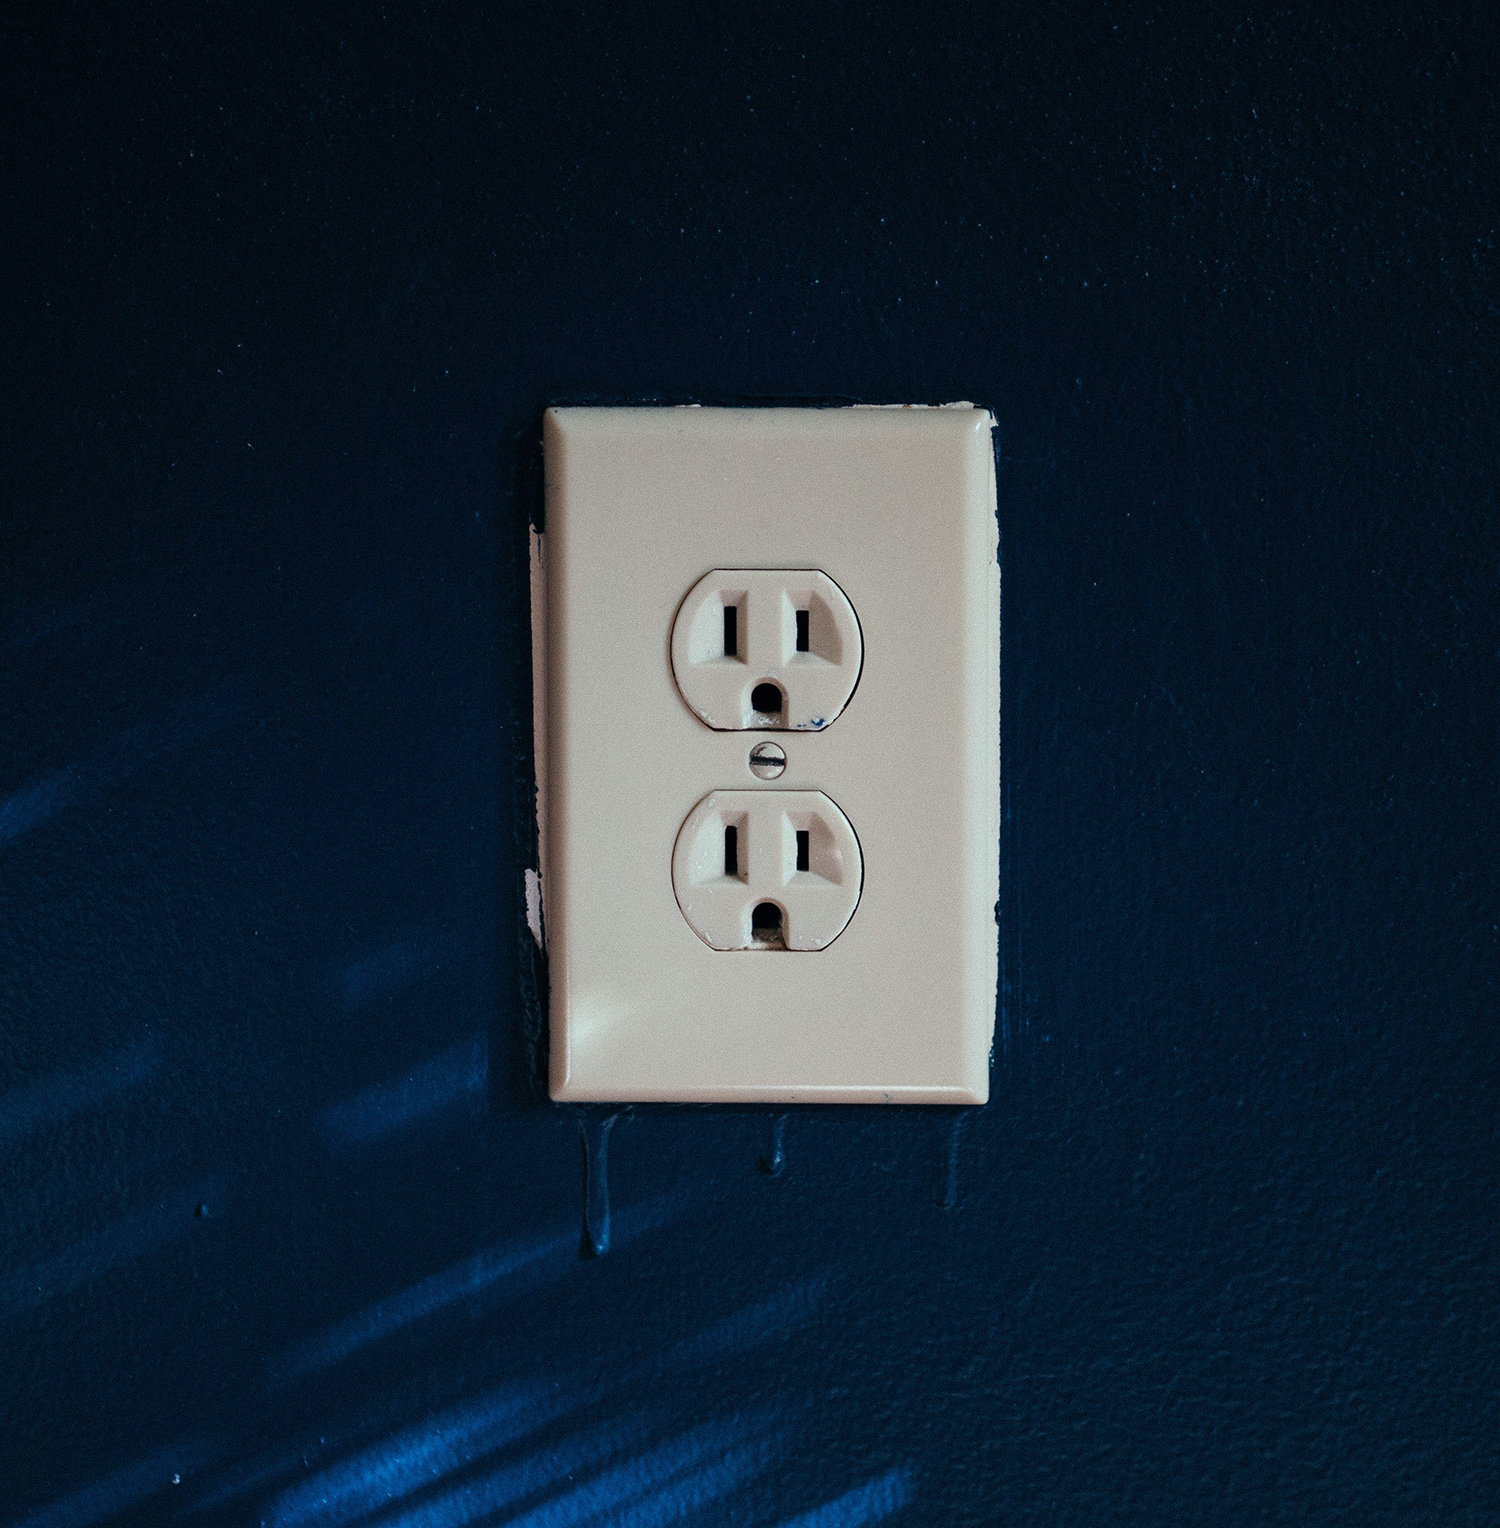 How To Choose An Adaptor And Live To Tell About It